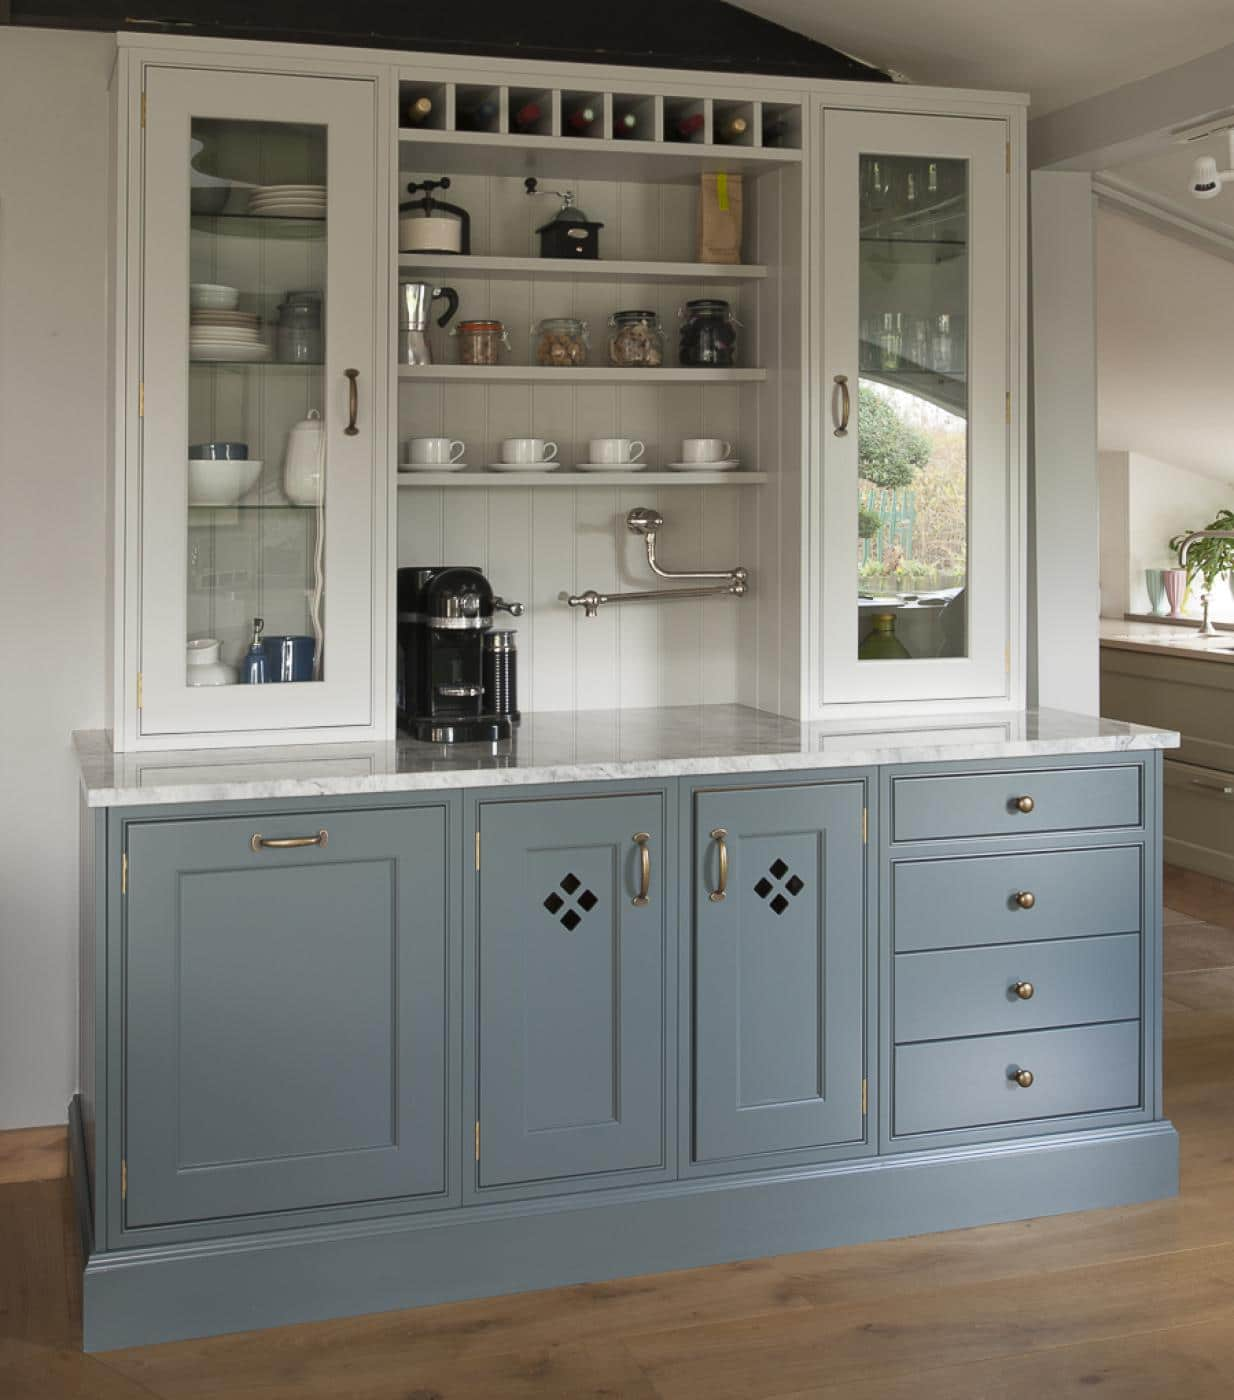 country-kitchen-cupboard-coffee-maker-jm-interiors